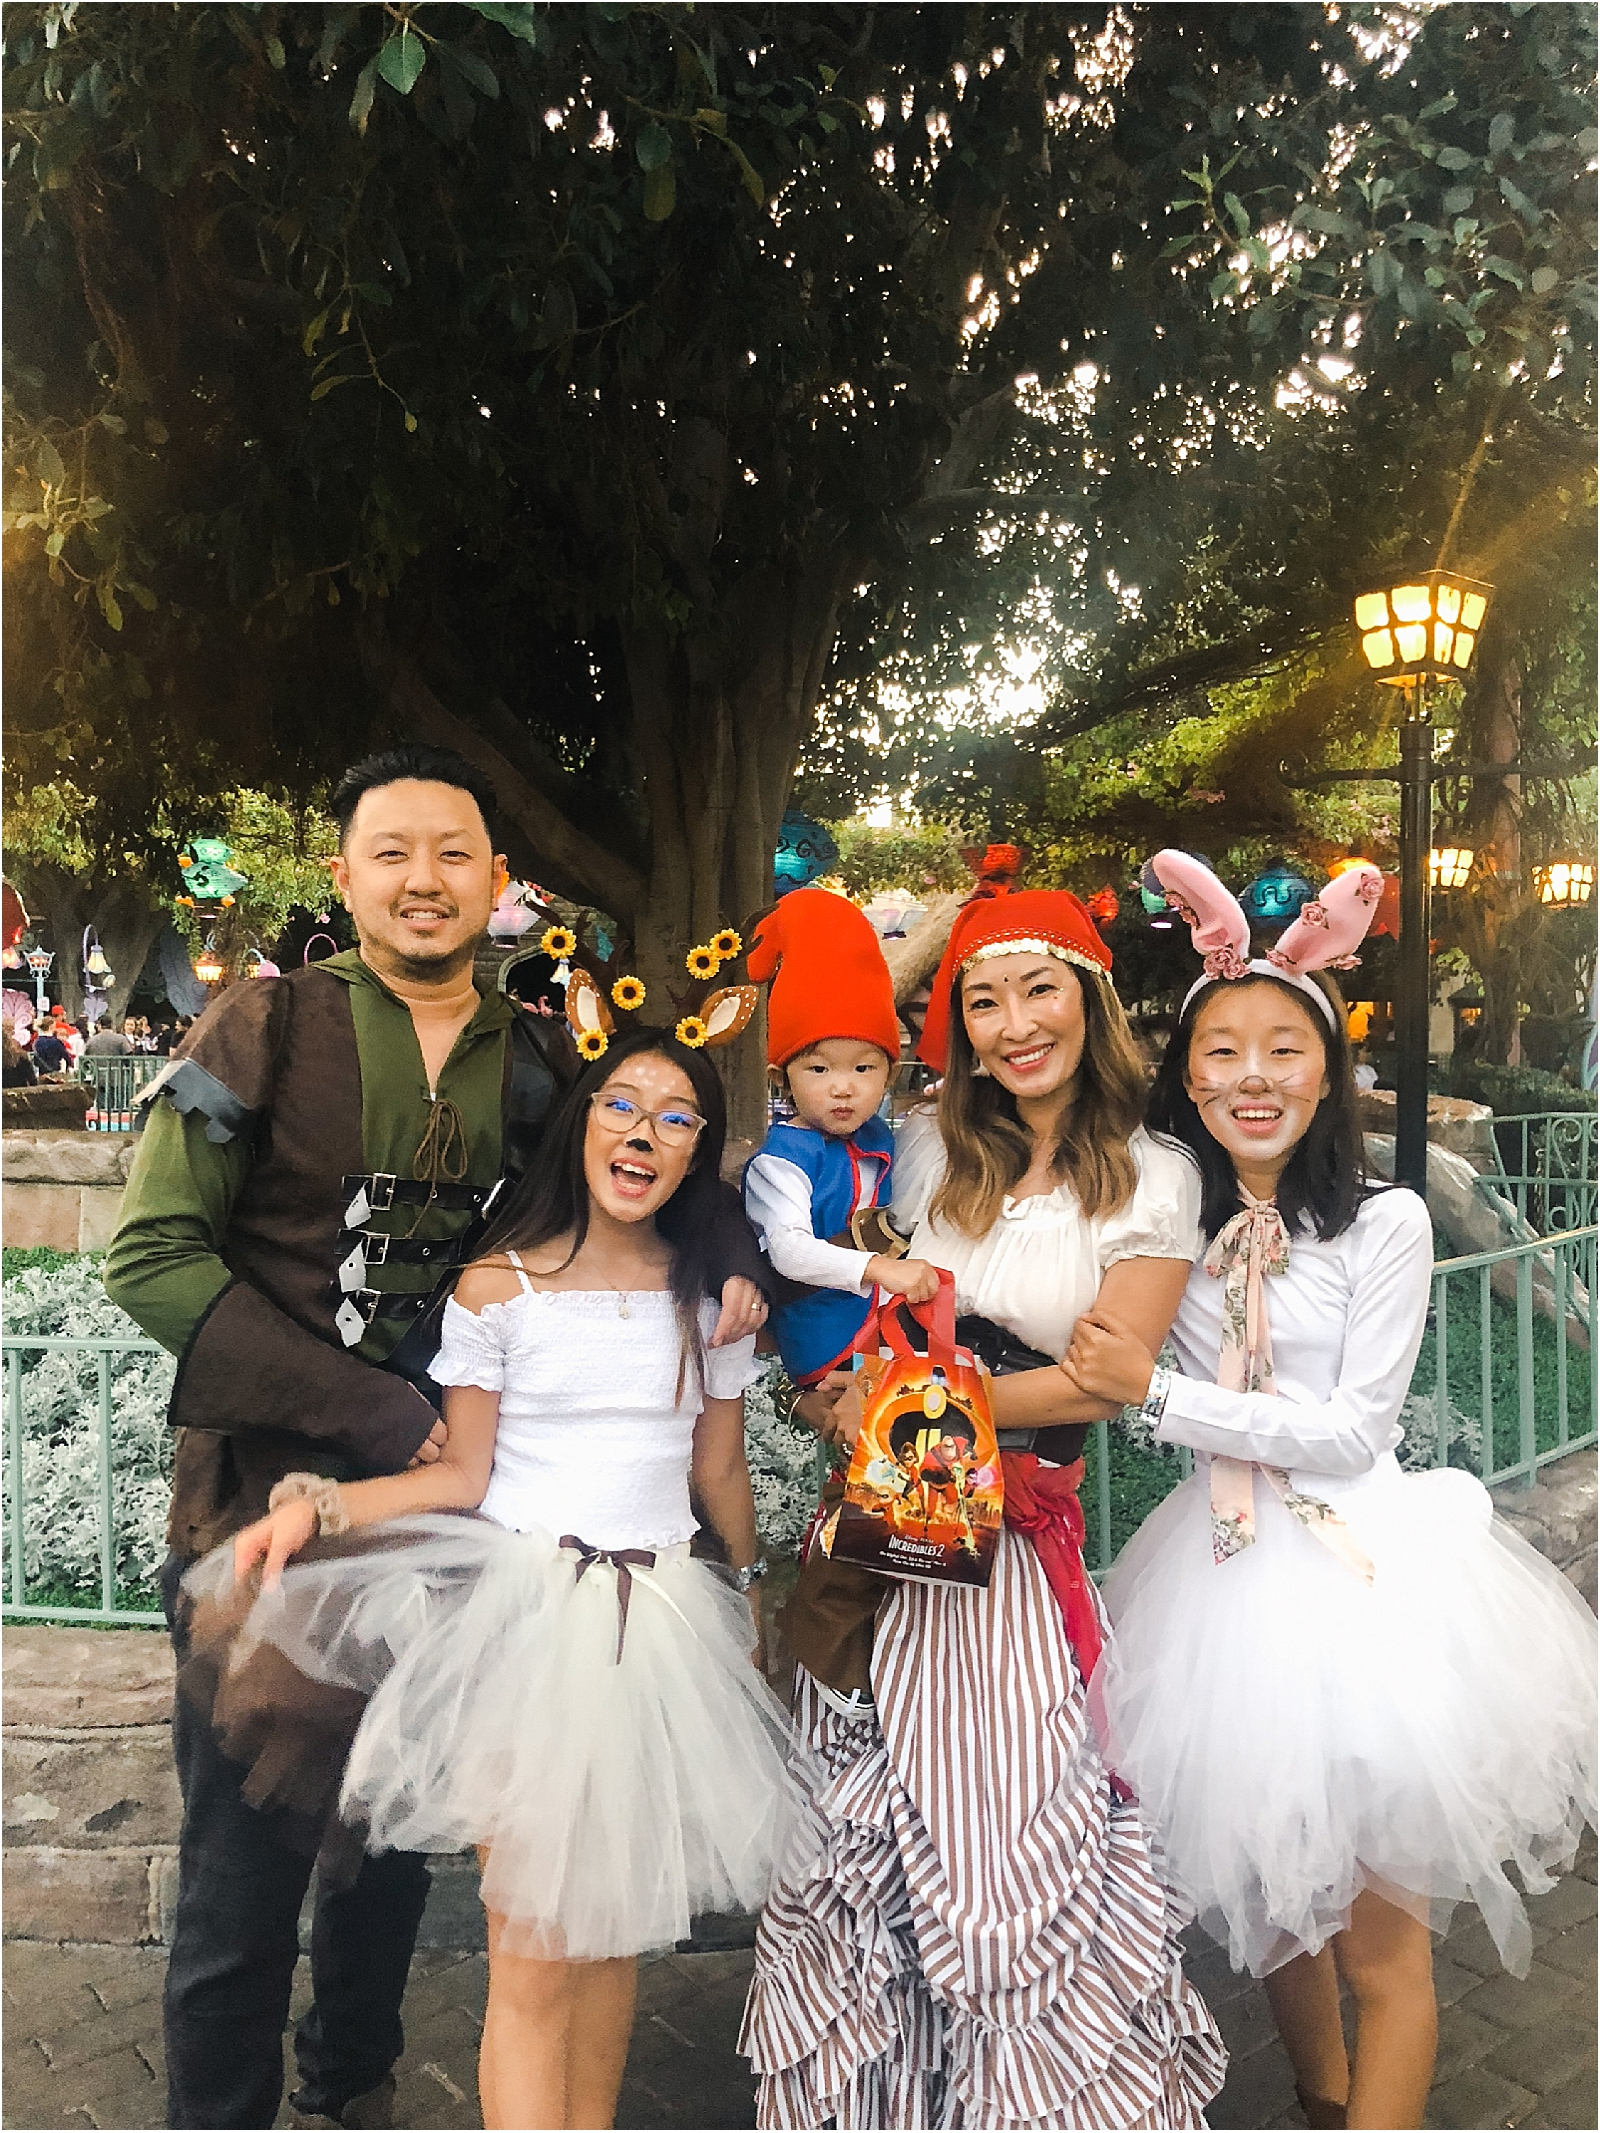 halloween-forest-family-costume